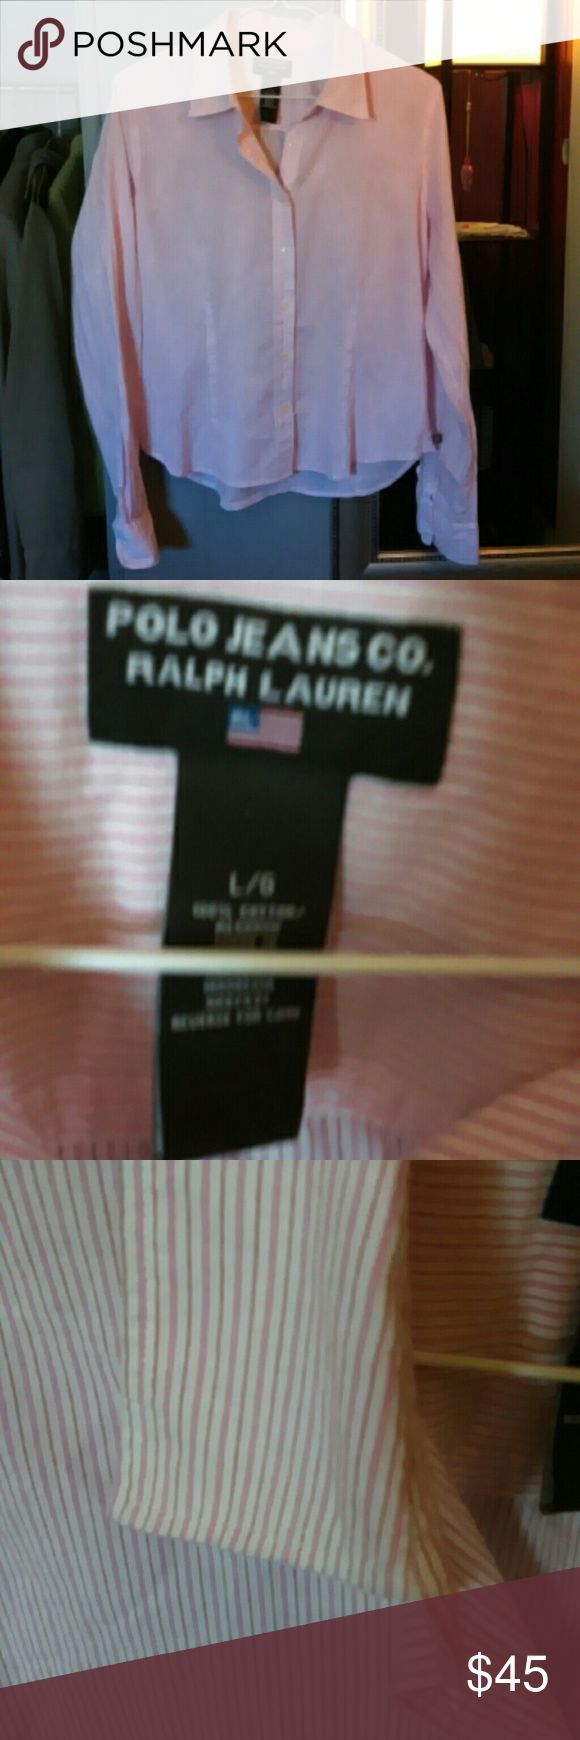 SALE!!Polo Ralph Lauren pink pinstripe shirt L Classic Polo Ralph Lauren shirt. Different colors and thicknesses of pink lines on the shirt. White button down. Non-iron Shirt. Excellent condition! Size large Polo by Ralph Lauren Tops Button Down Shirts